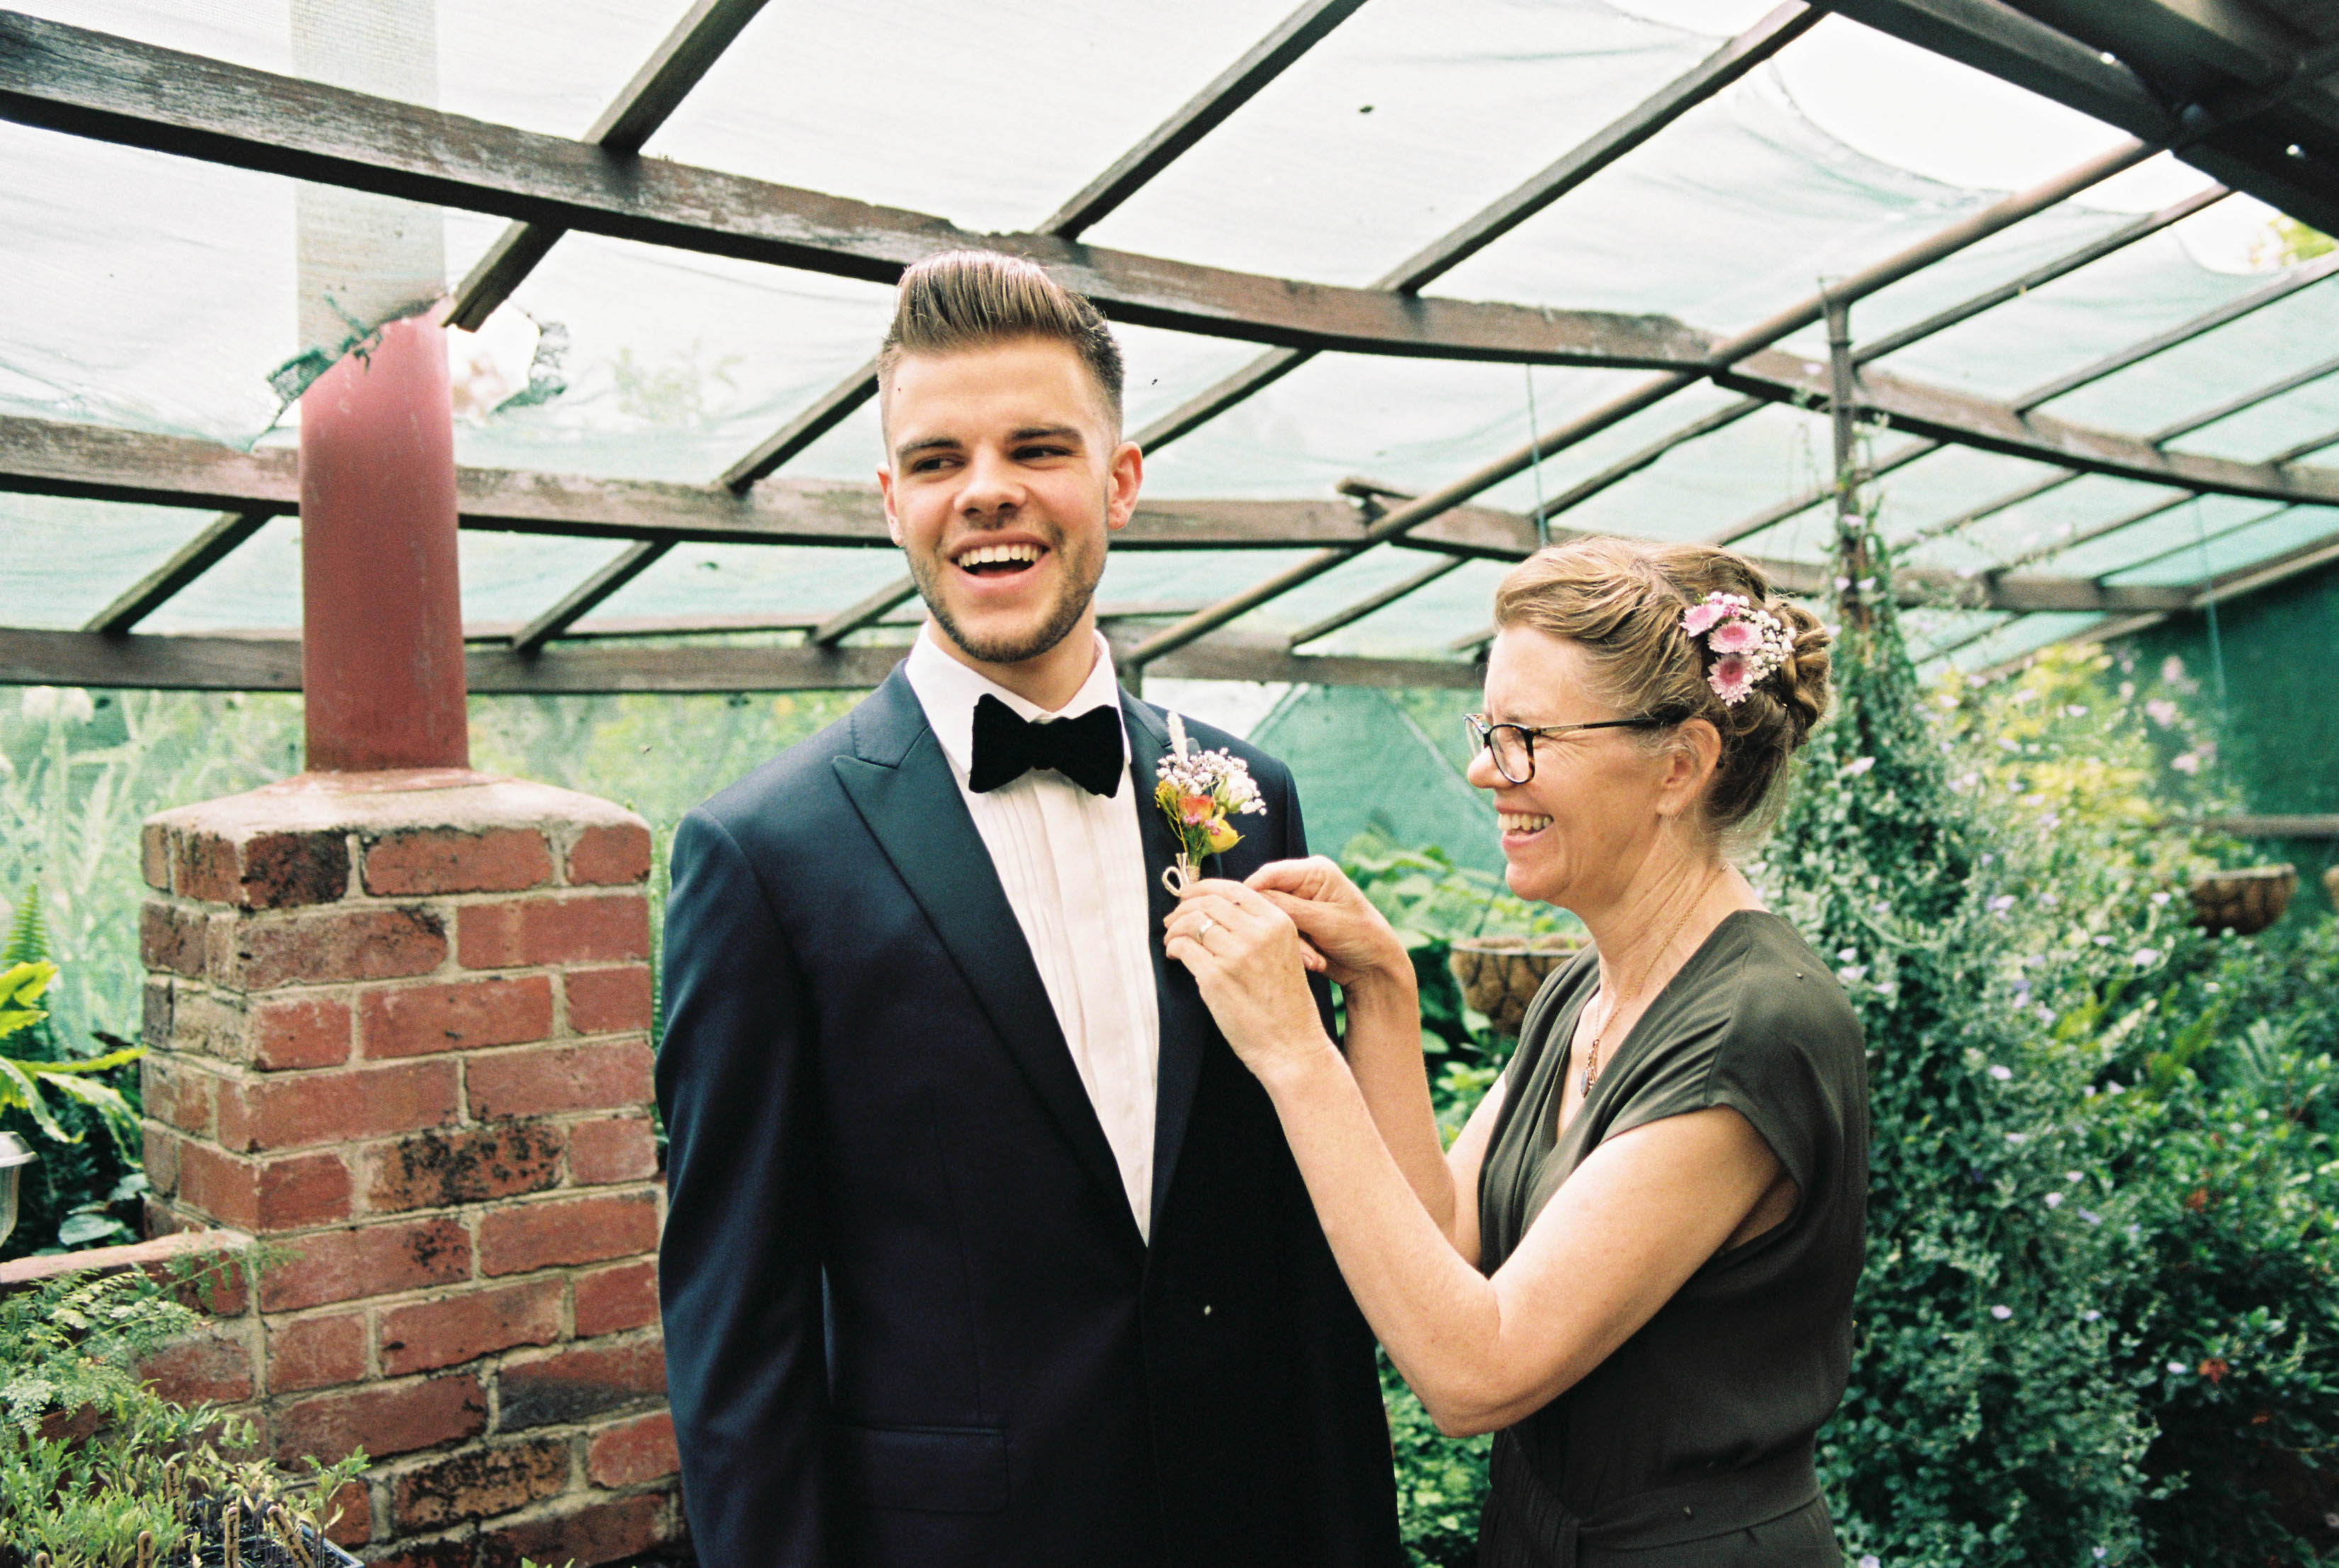 A 35mm wedding photo of a groom's Mum helping him put his buttonhole on